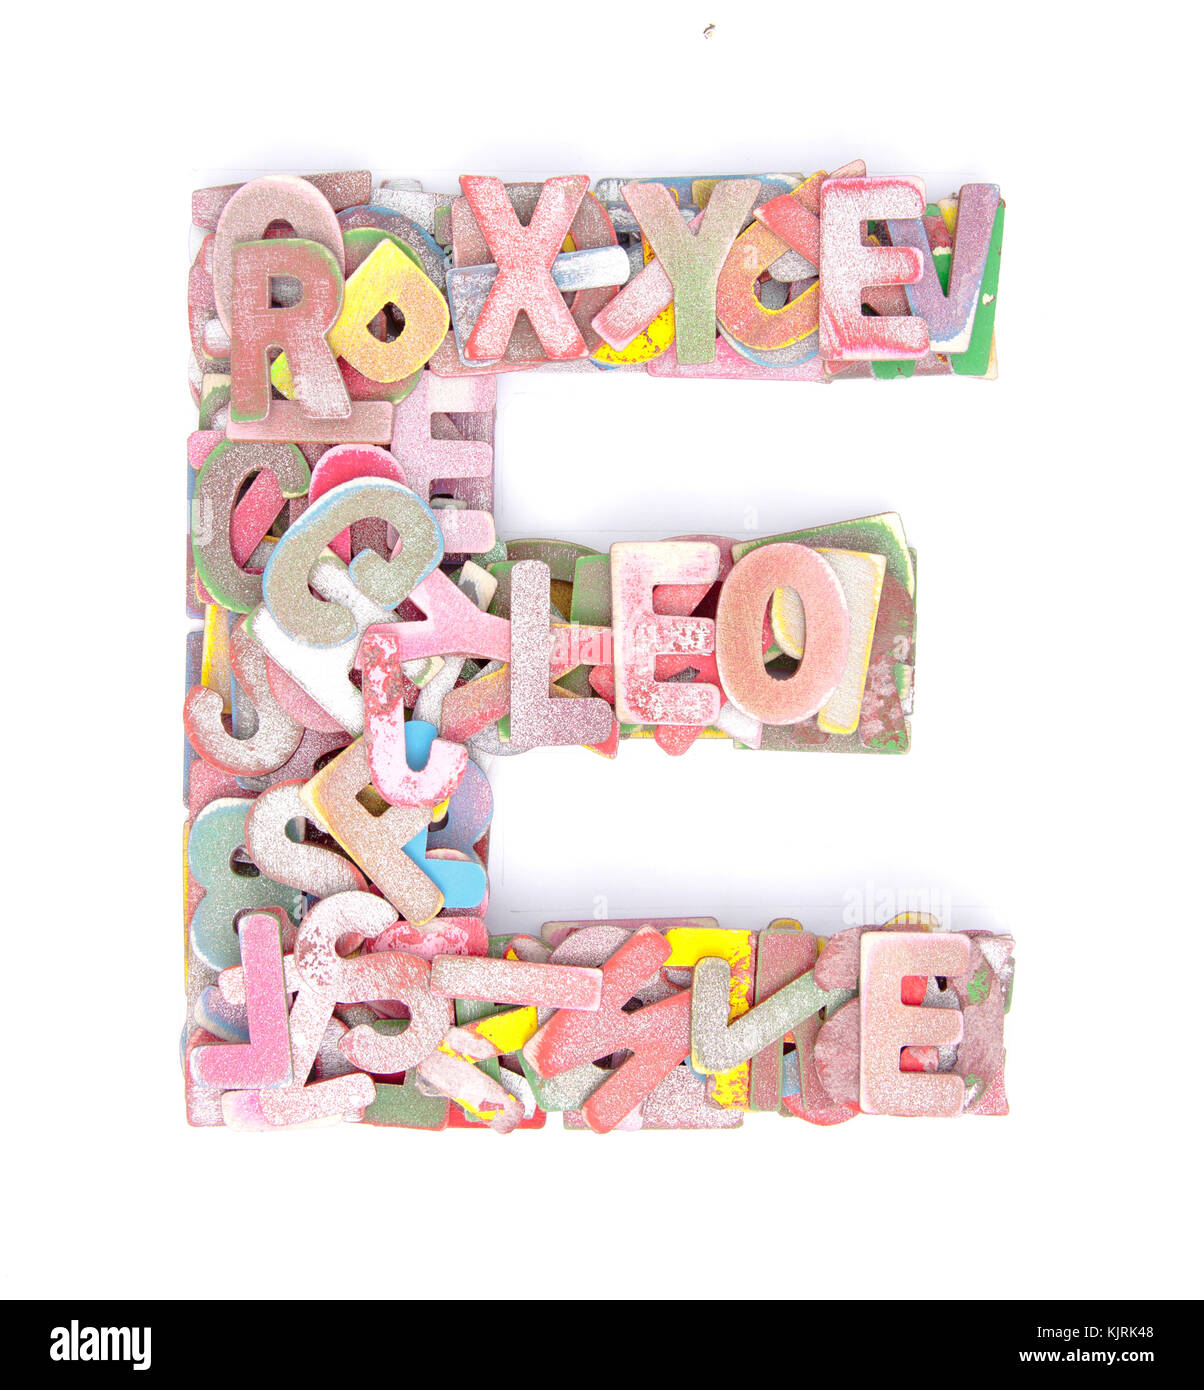 lots of small wooden letters to make up the letter e